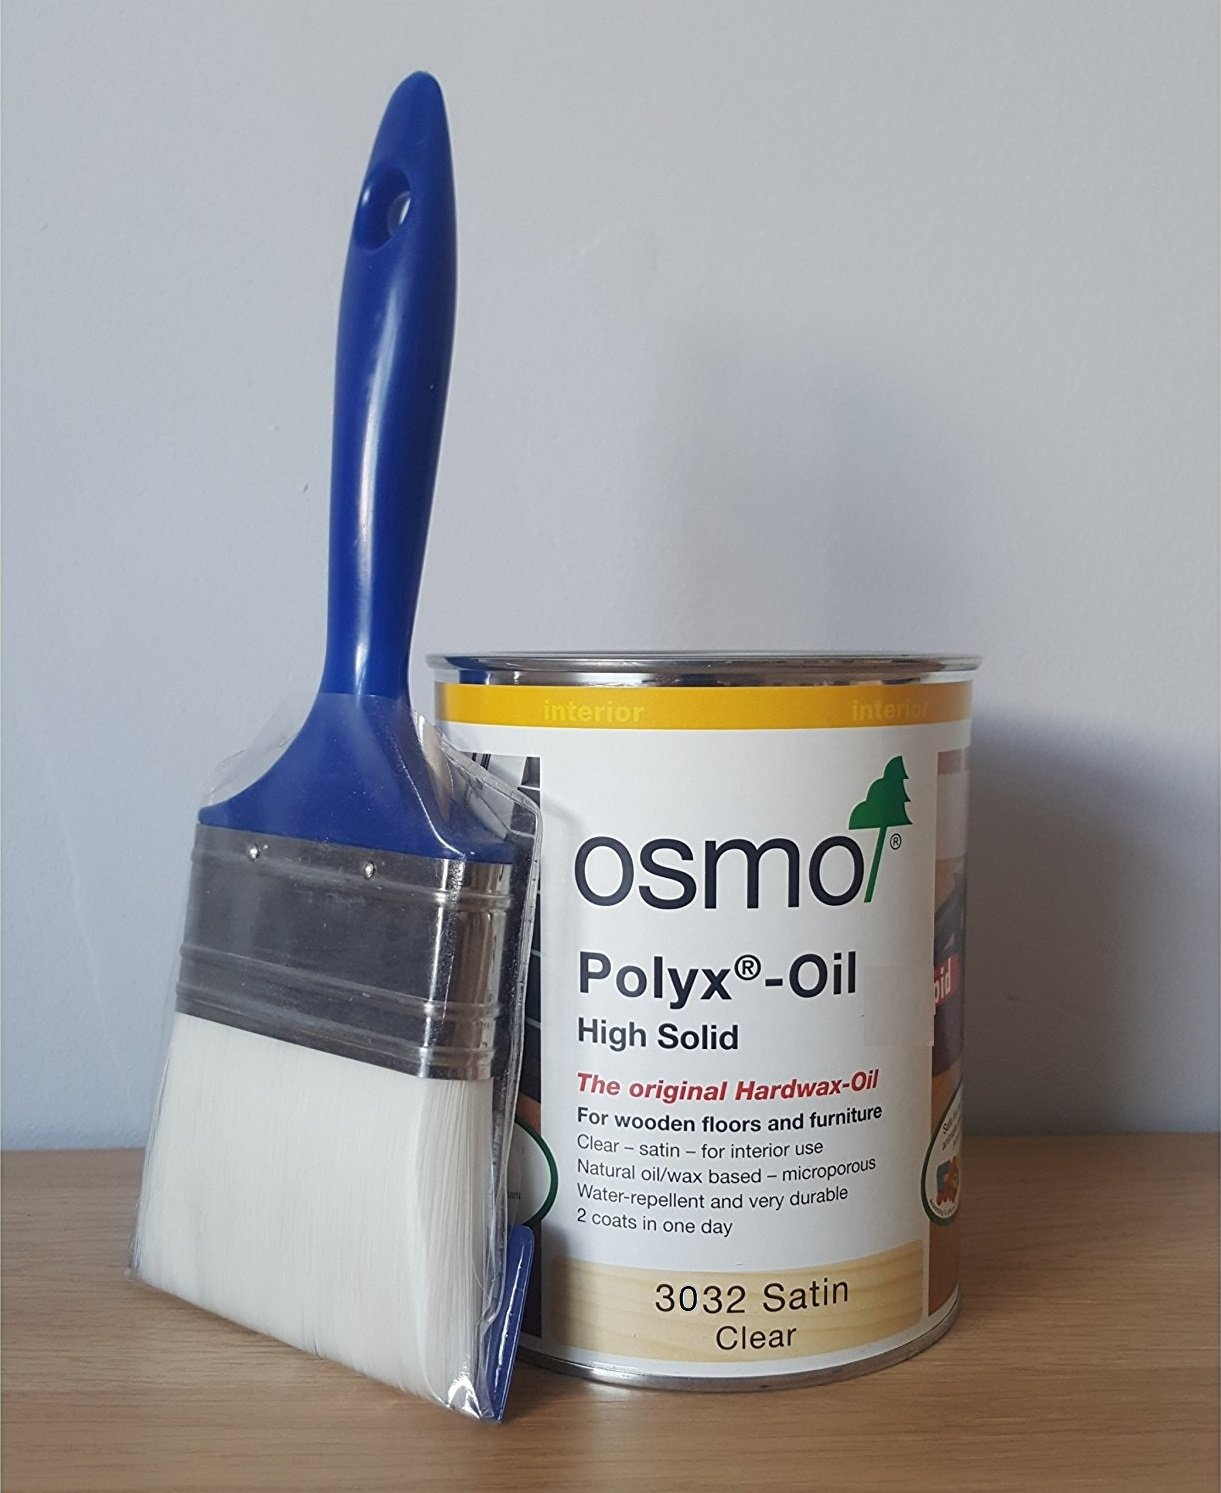 Osmo 750 Ml Polyx Hardwax Oil Satin 3032 with FREE Draper Brush 38mm Osmo Draper